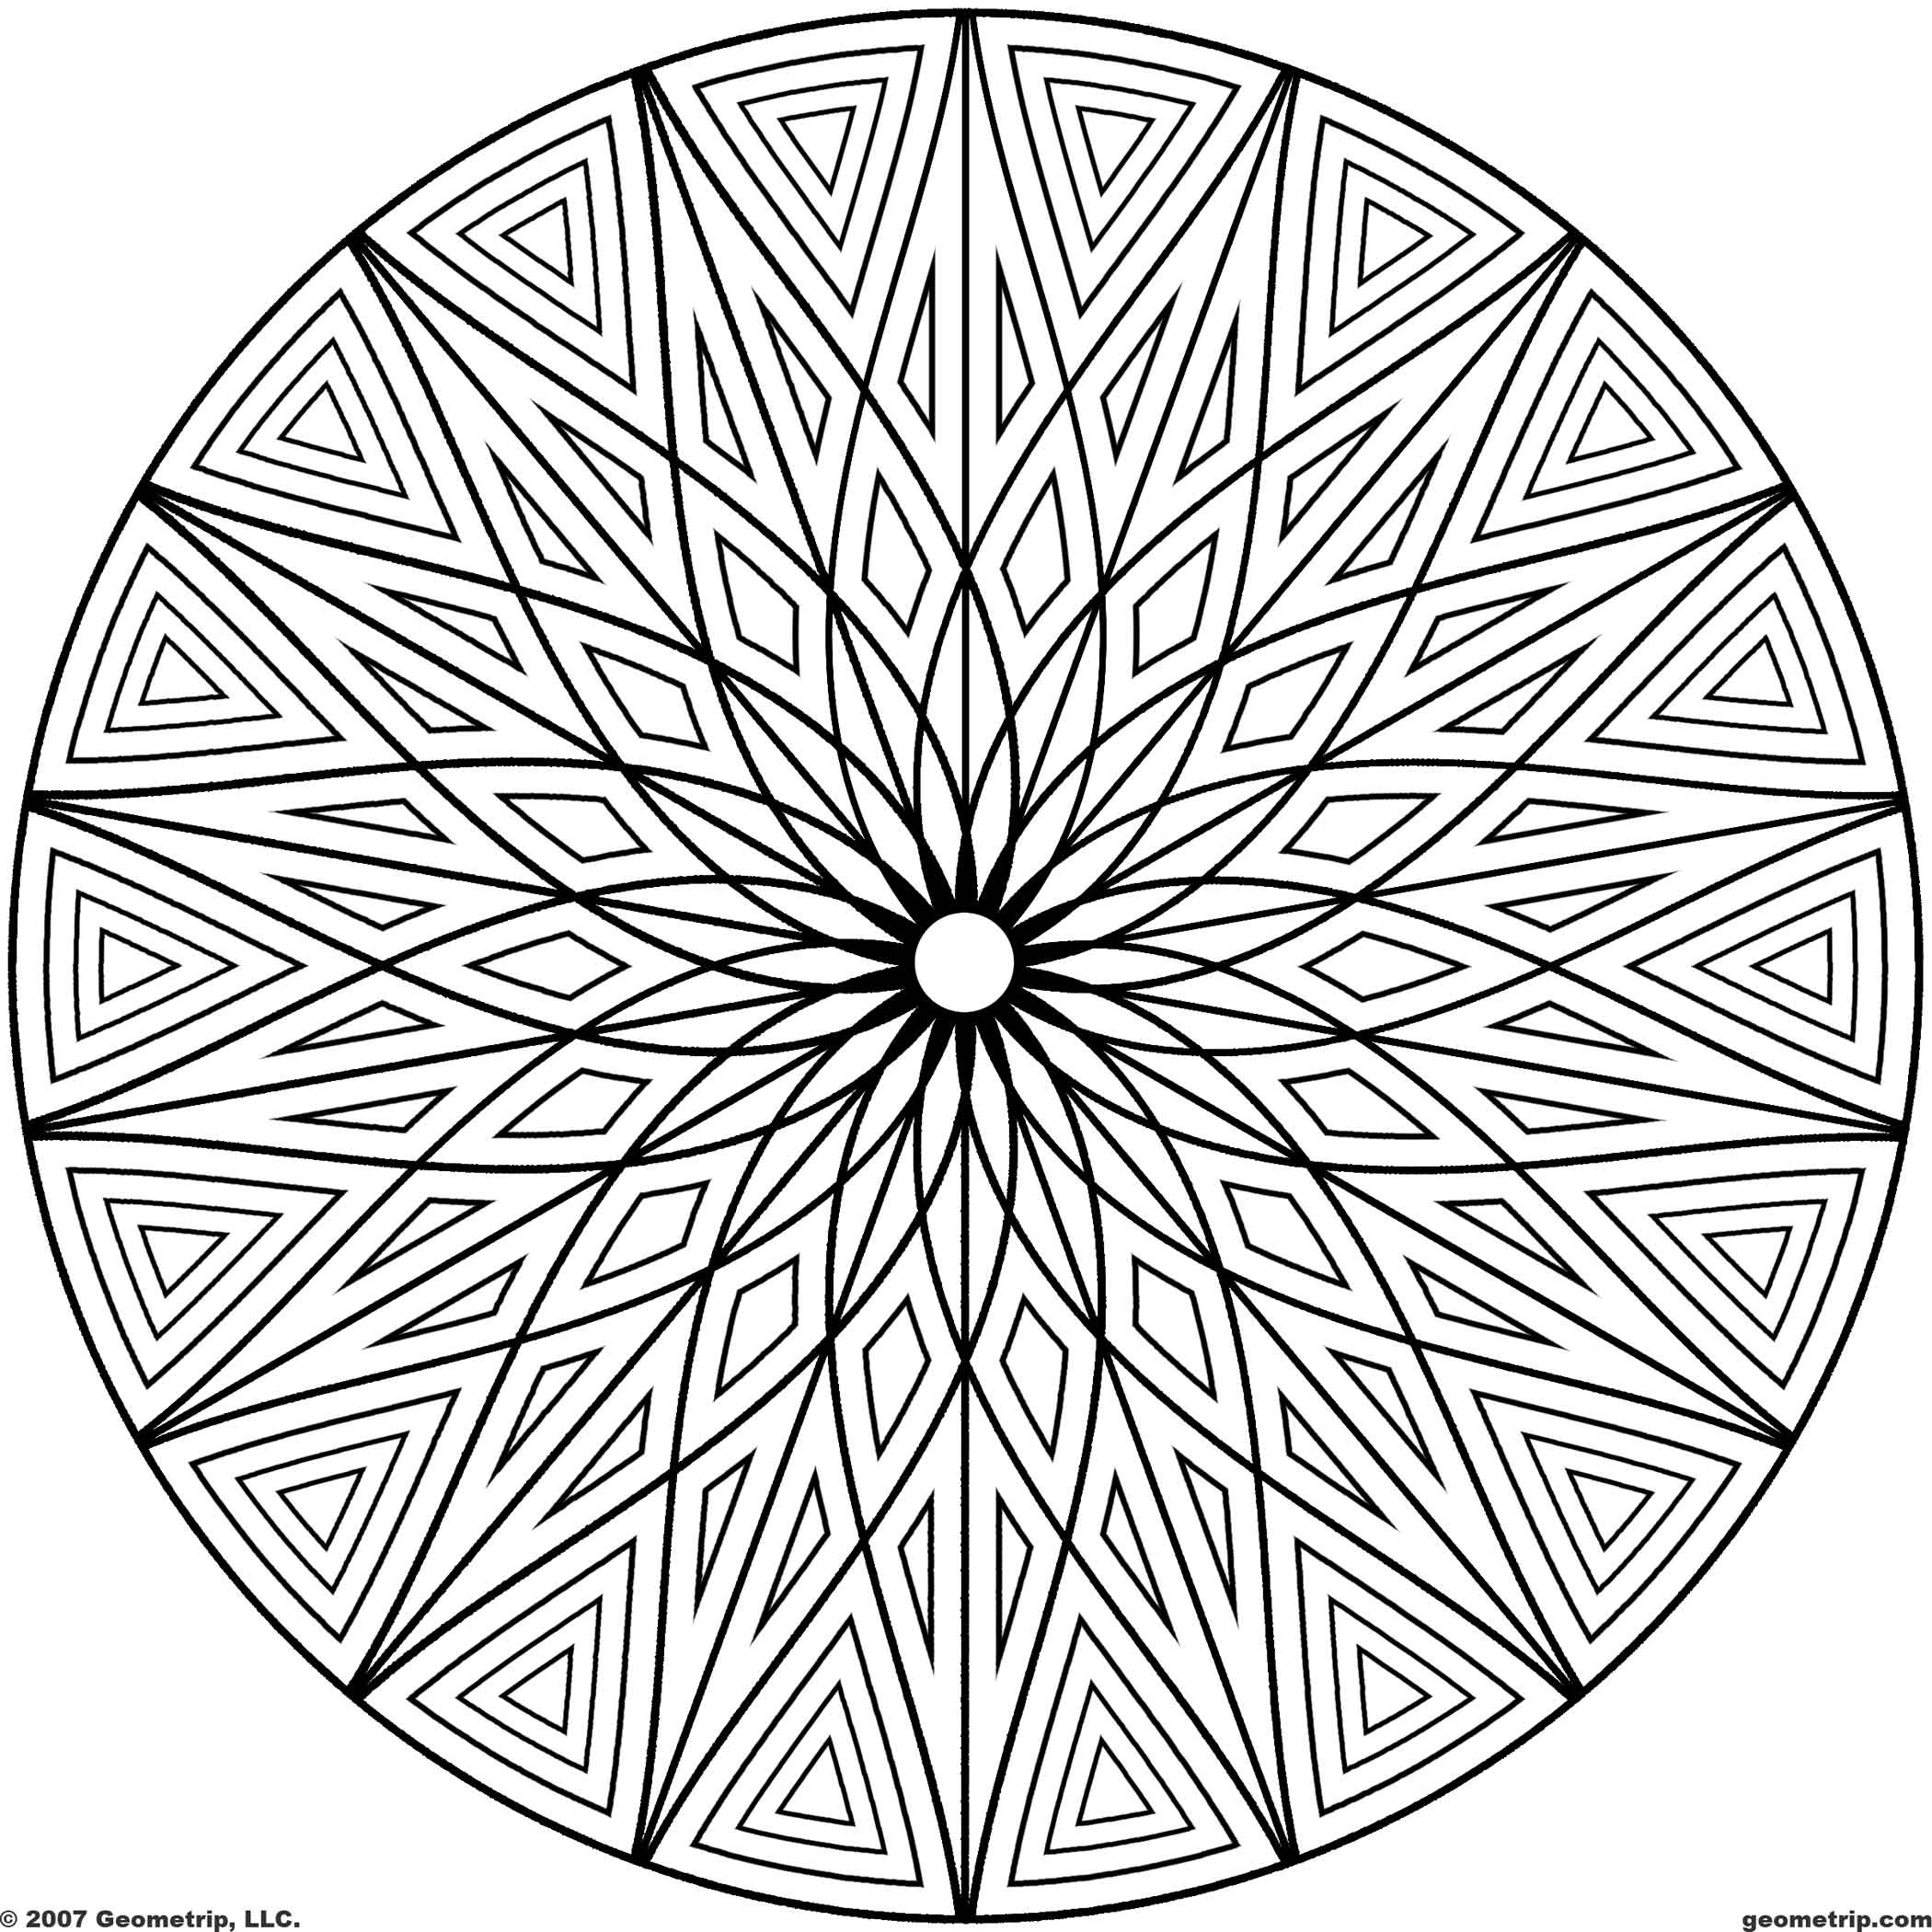 cool coloring pictures cool teenage coloring pages at getdrawings free download cool coloring pictures